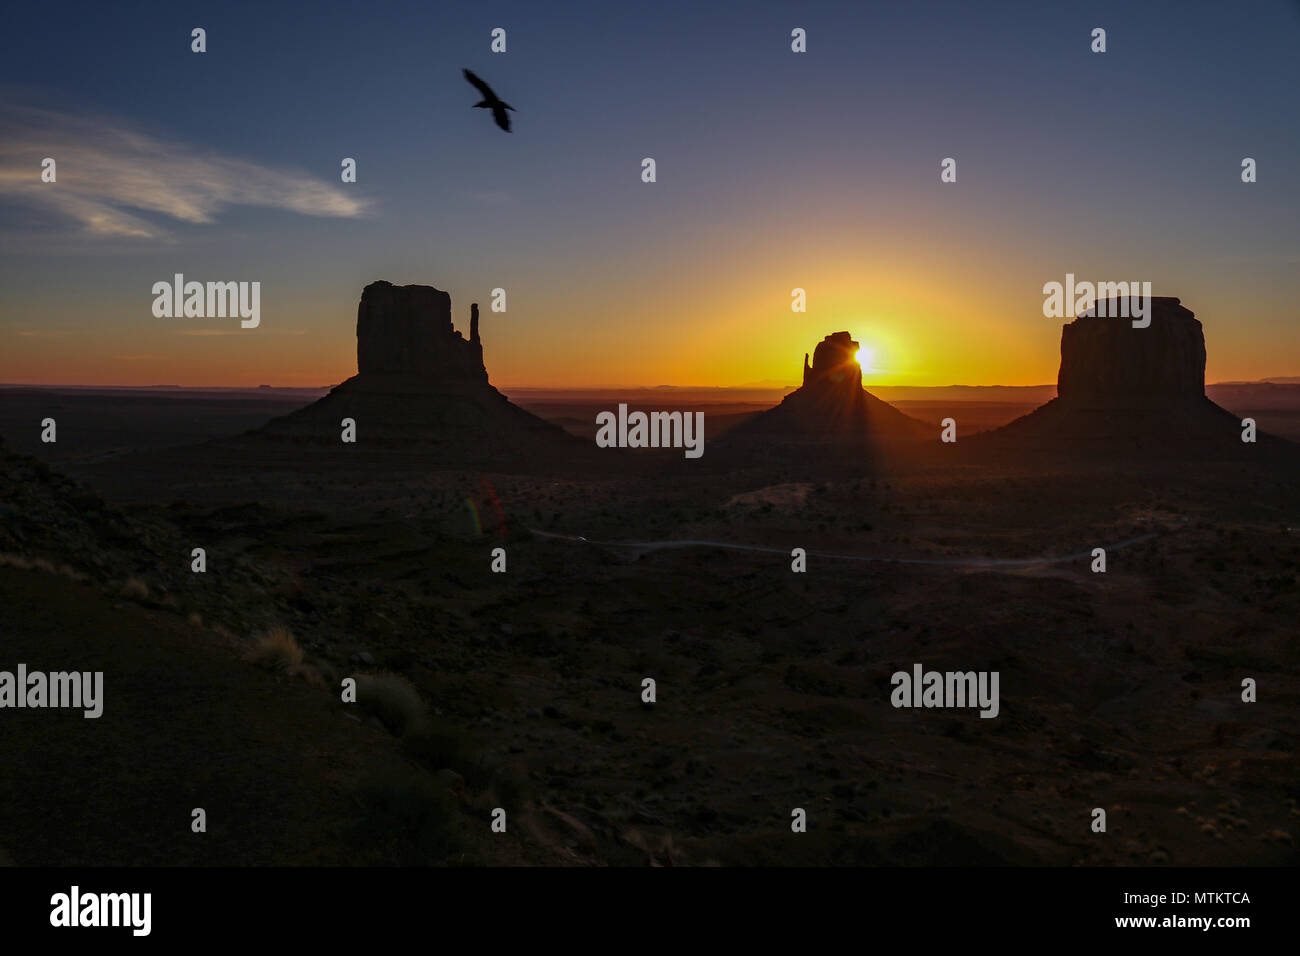 Eagle soaring over monument valley as the sun rises over the sandstone formations - Stock Image